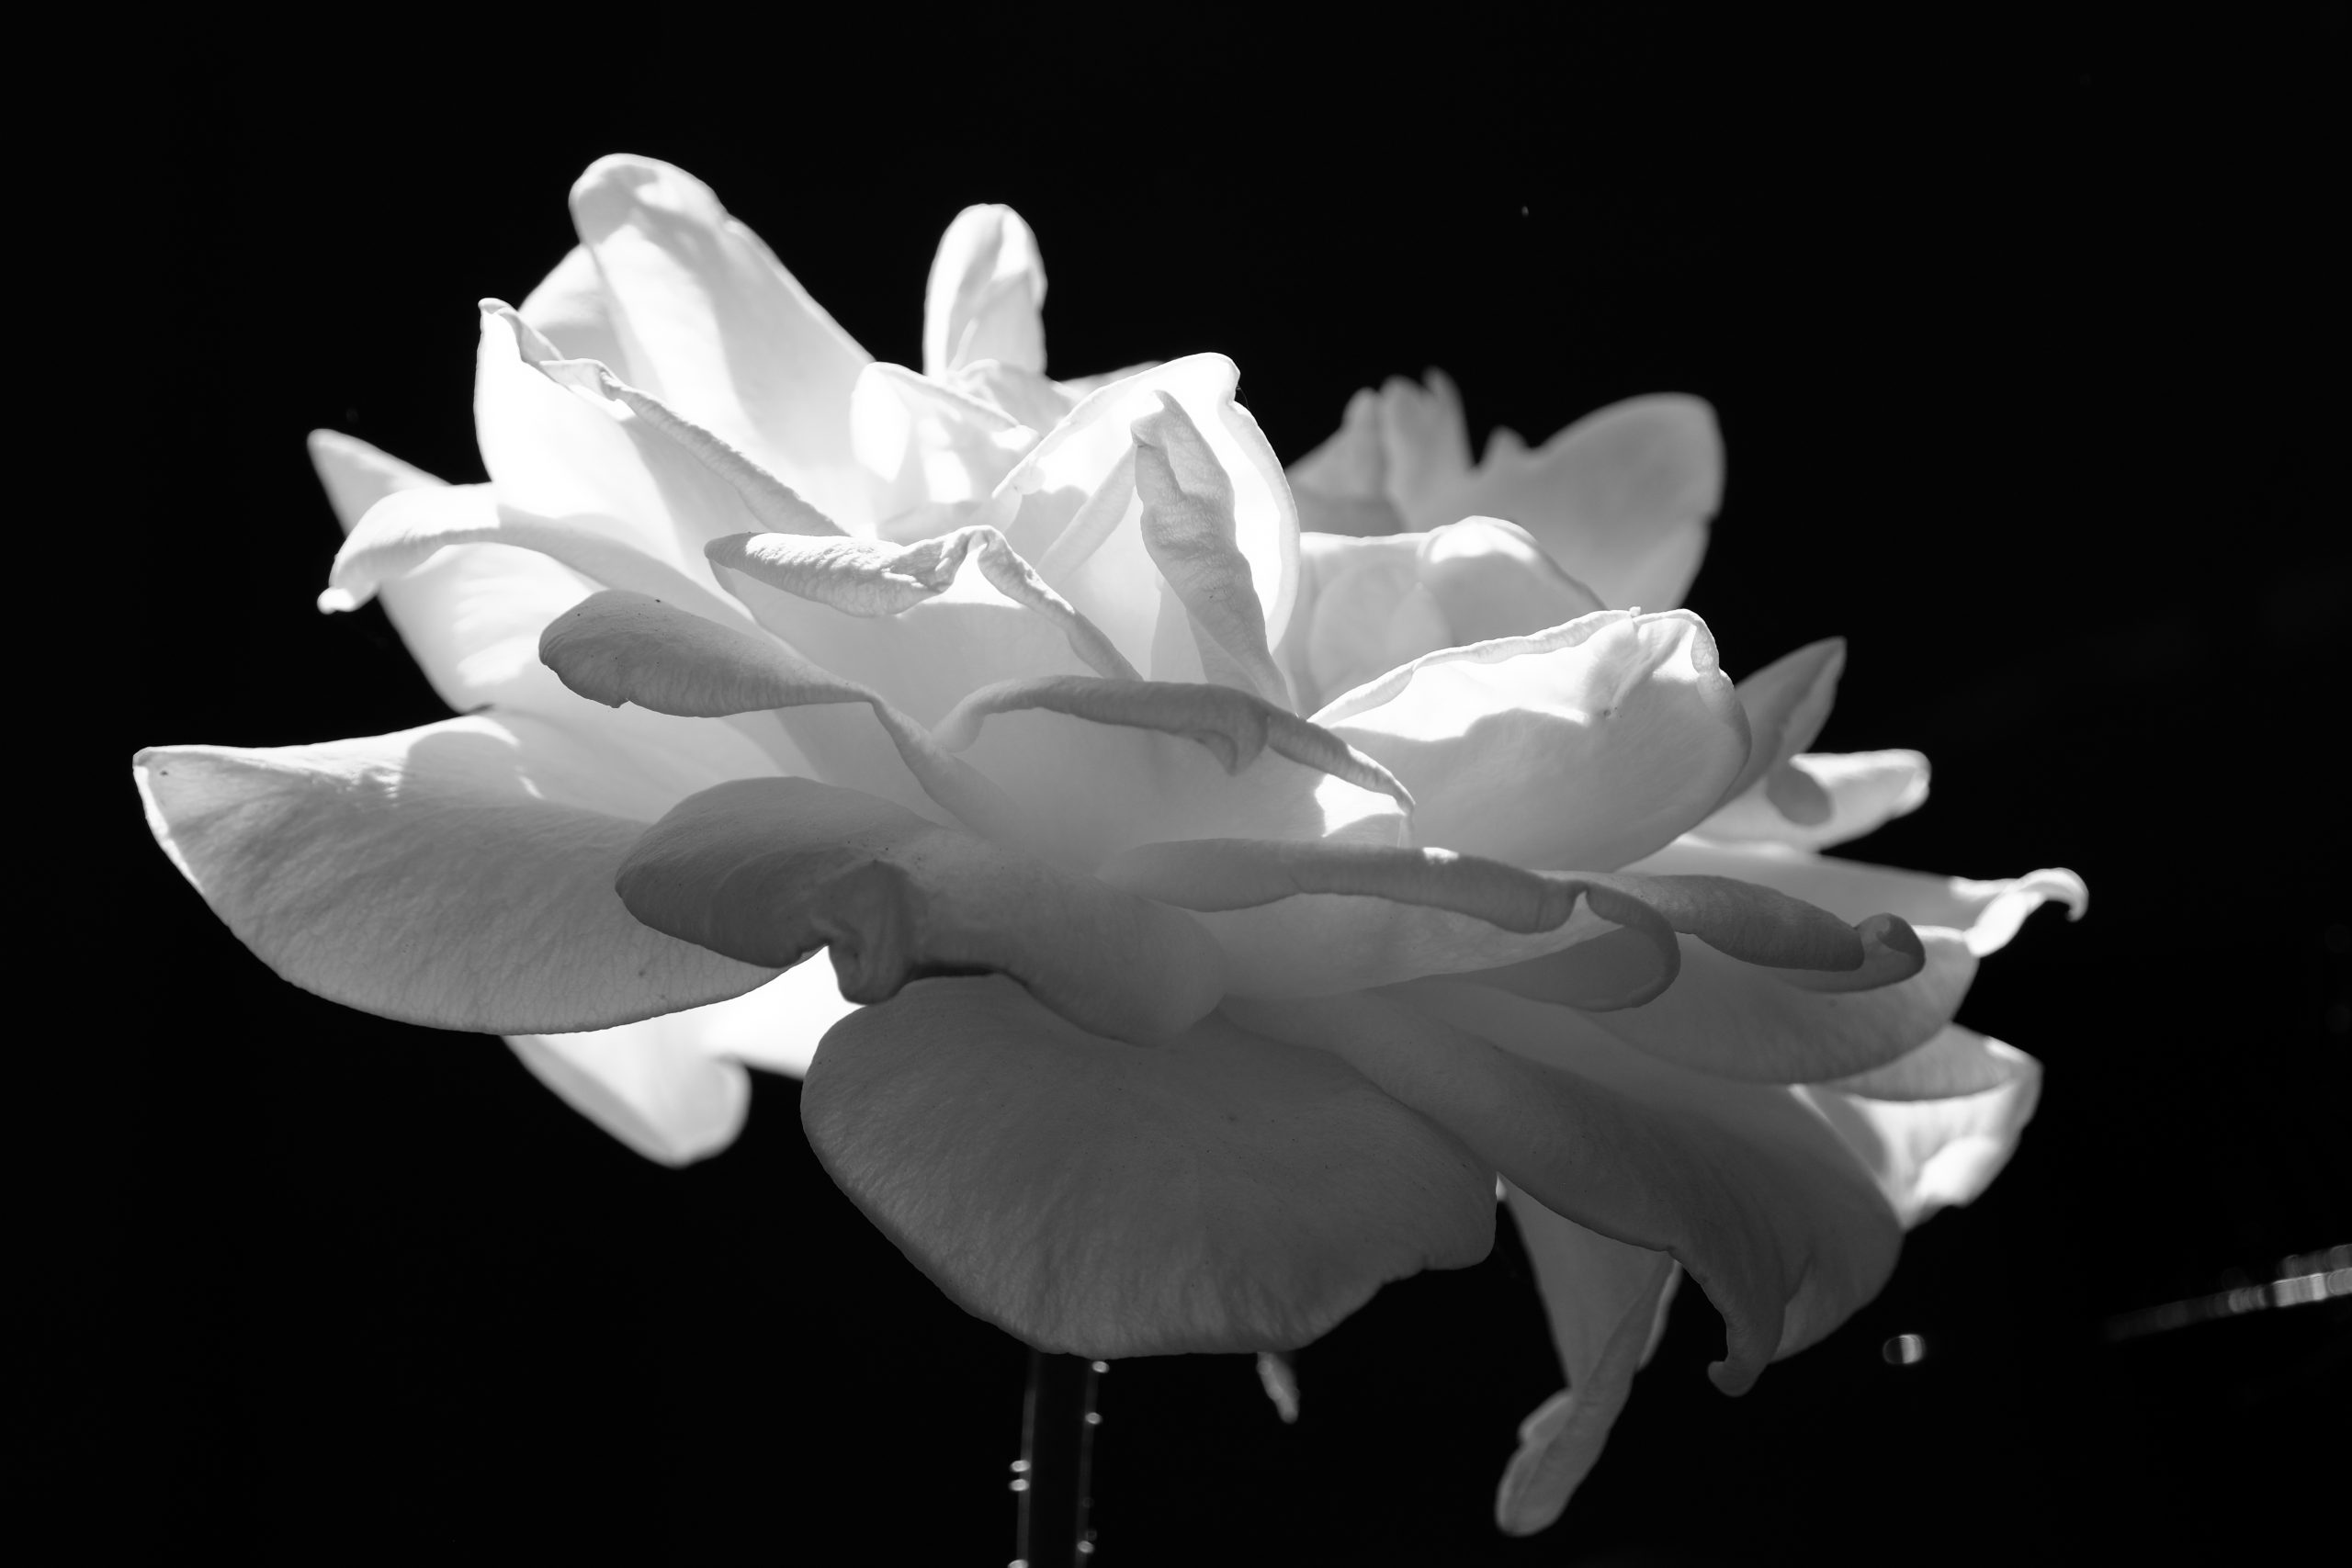 White Rose Oregon 18 August 2020 Black and White Copyright 2020 Steve J Davis